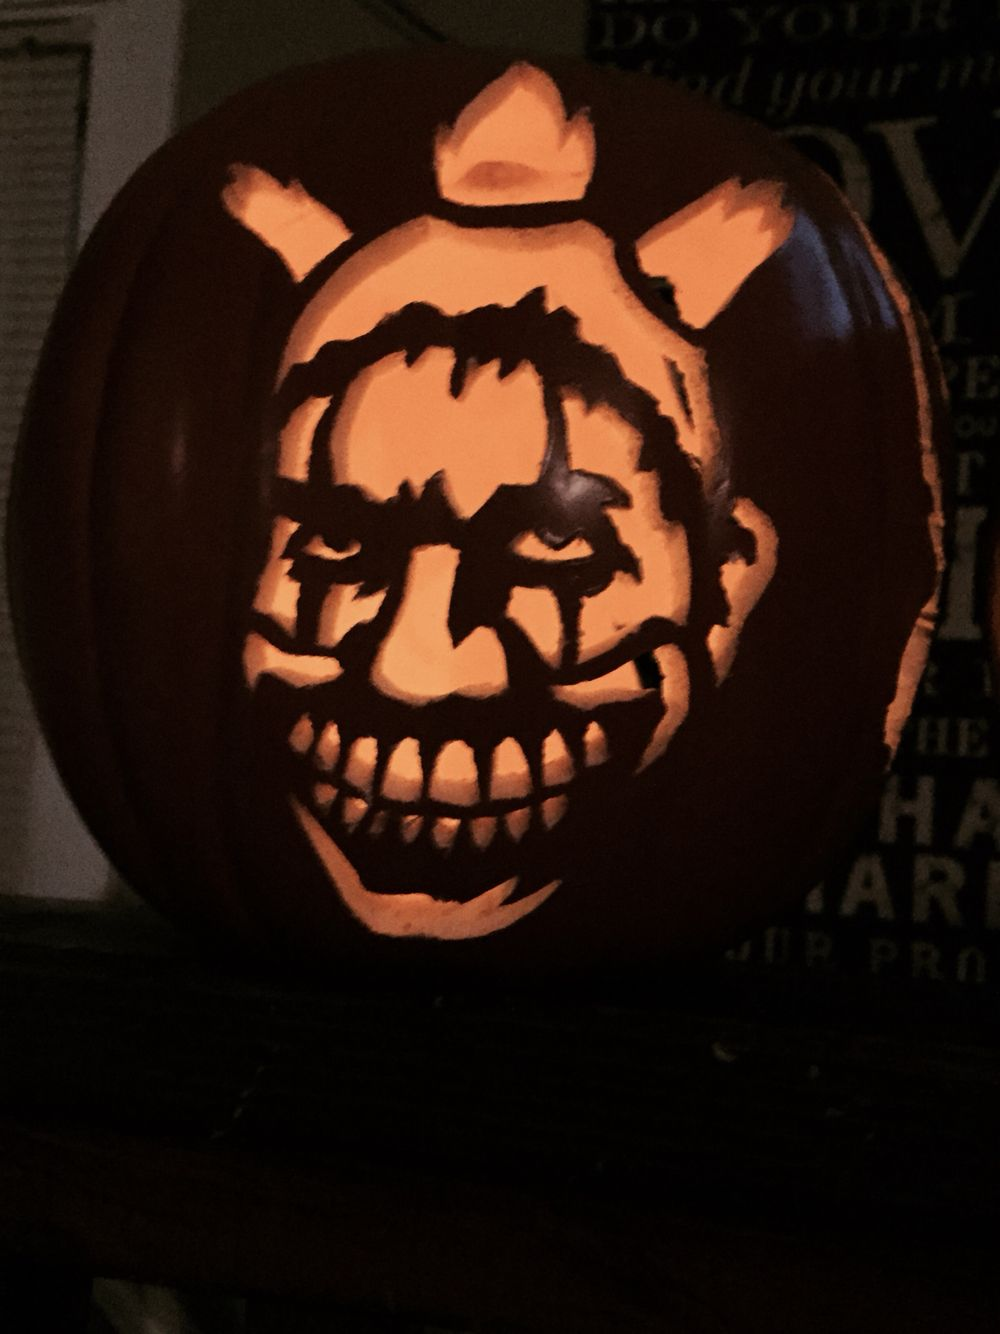 Twisty the clown pumpkin | Things I make...and sell! | Pinterest ...